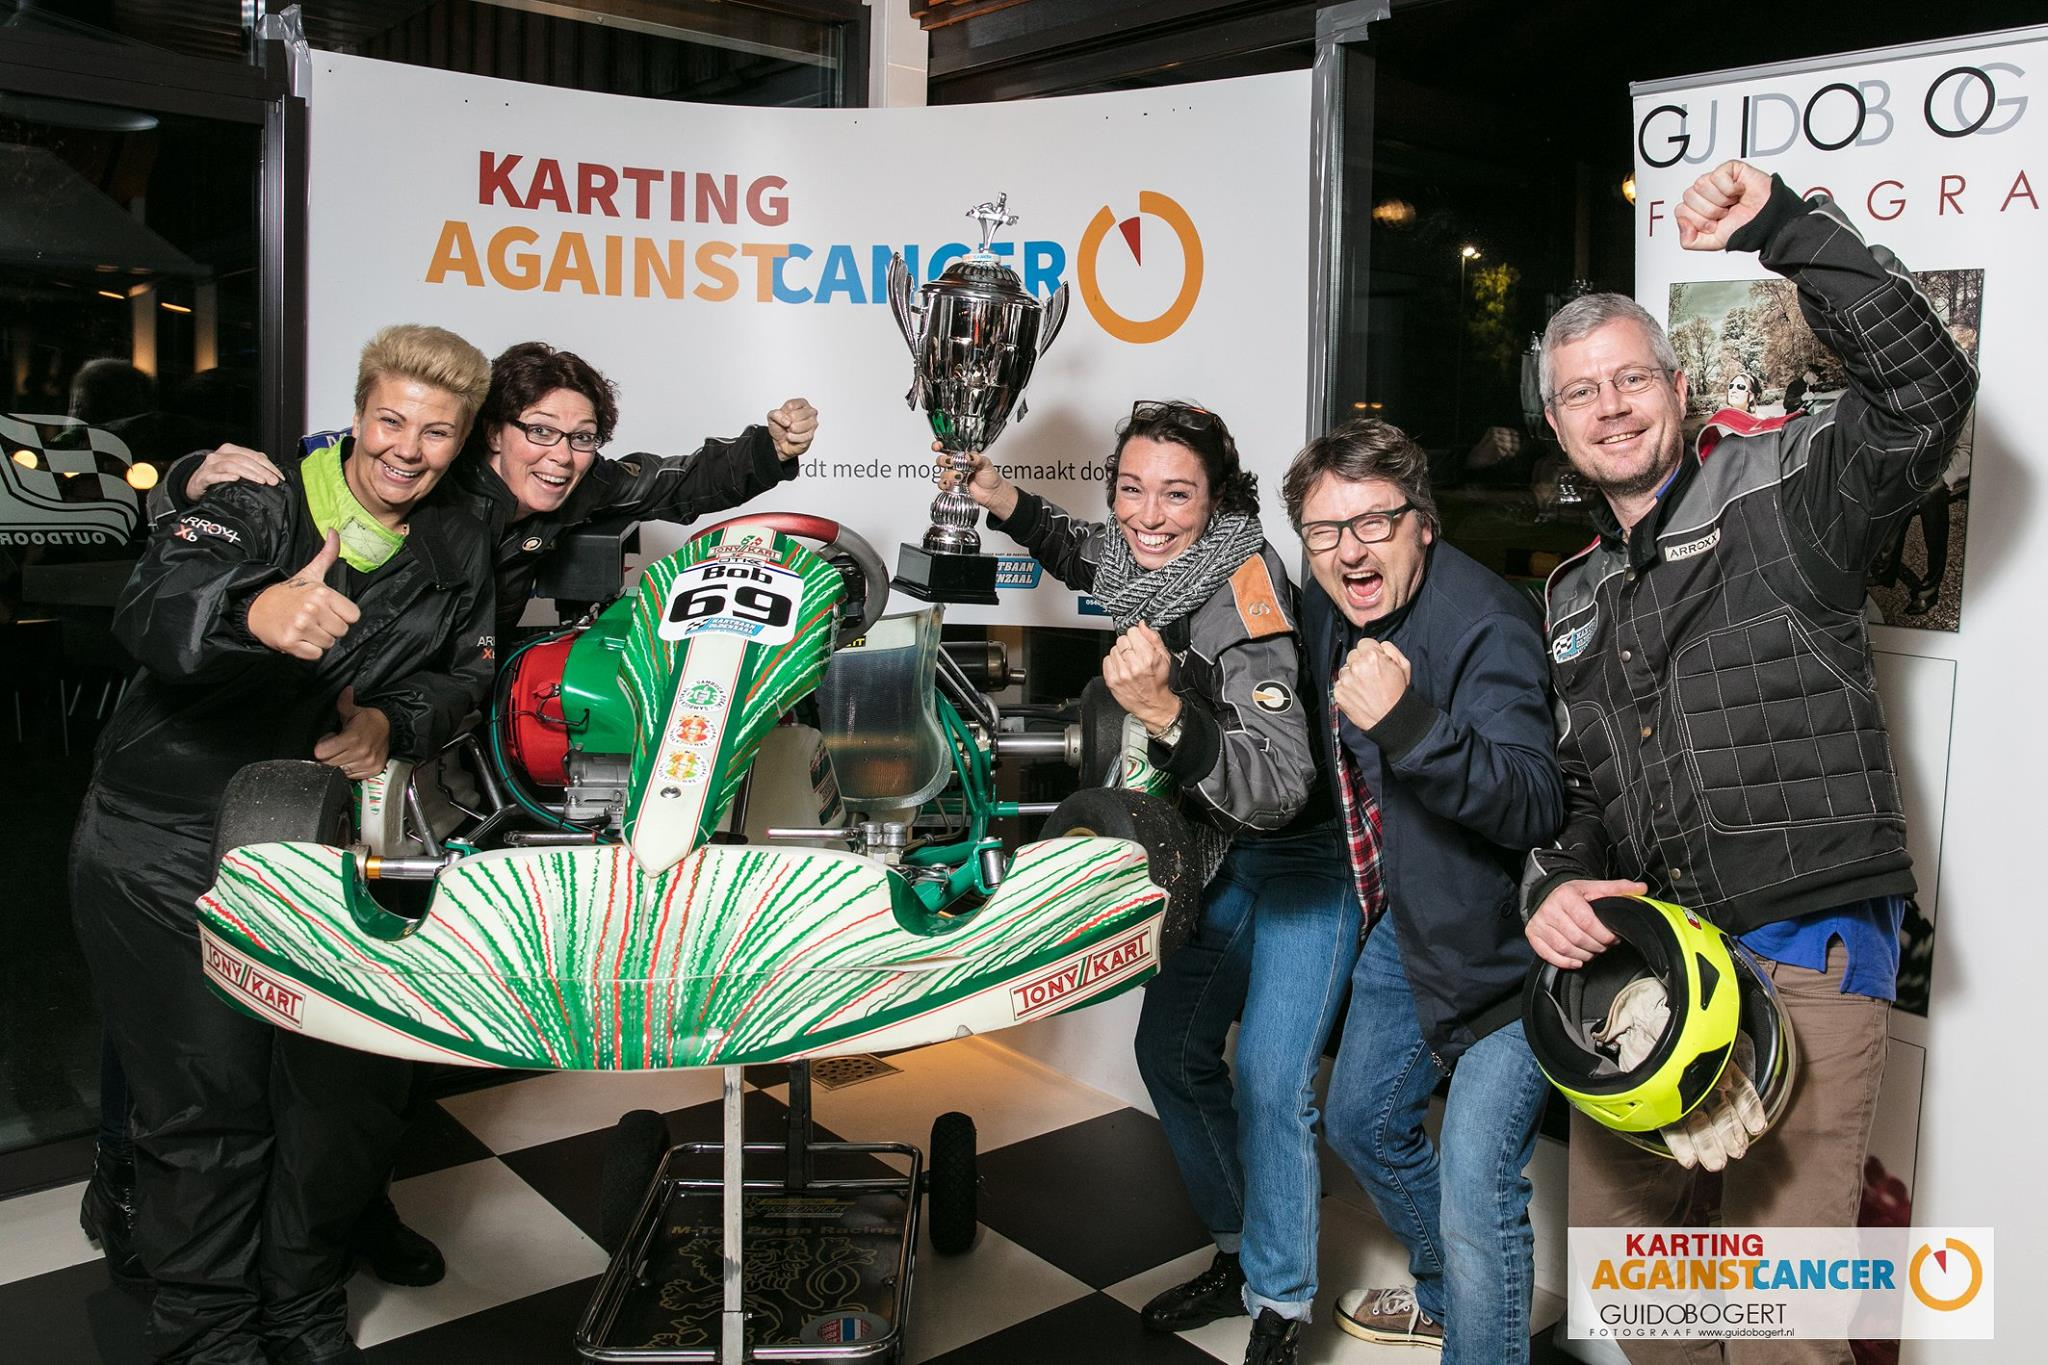 Karting against cancer